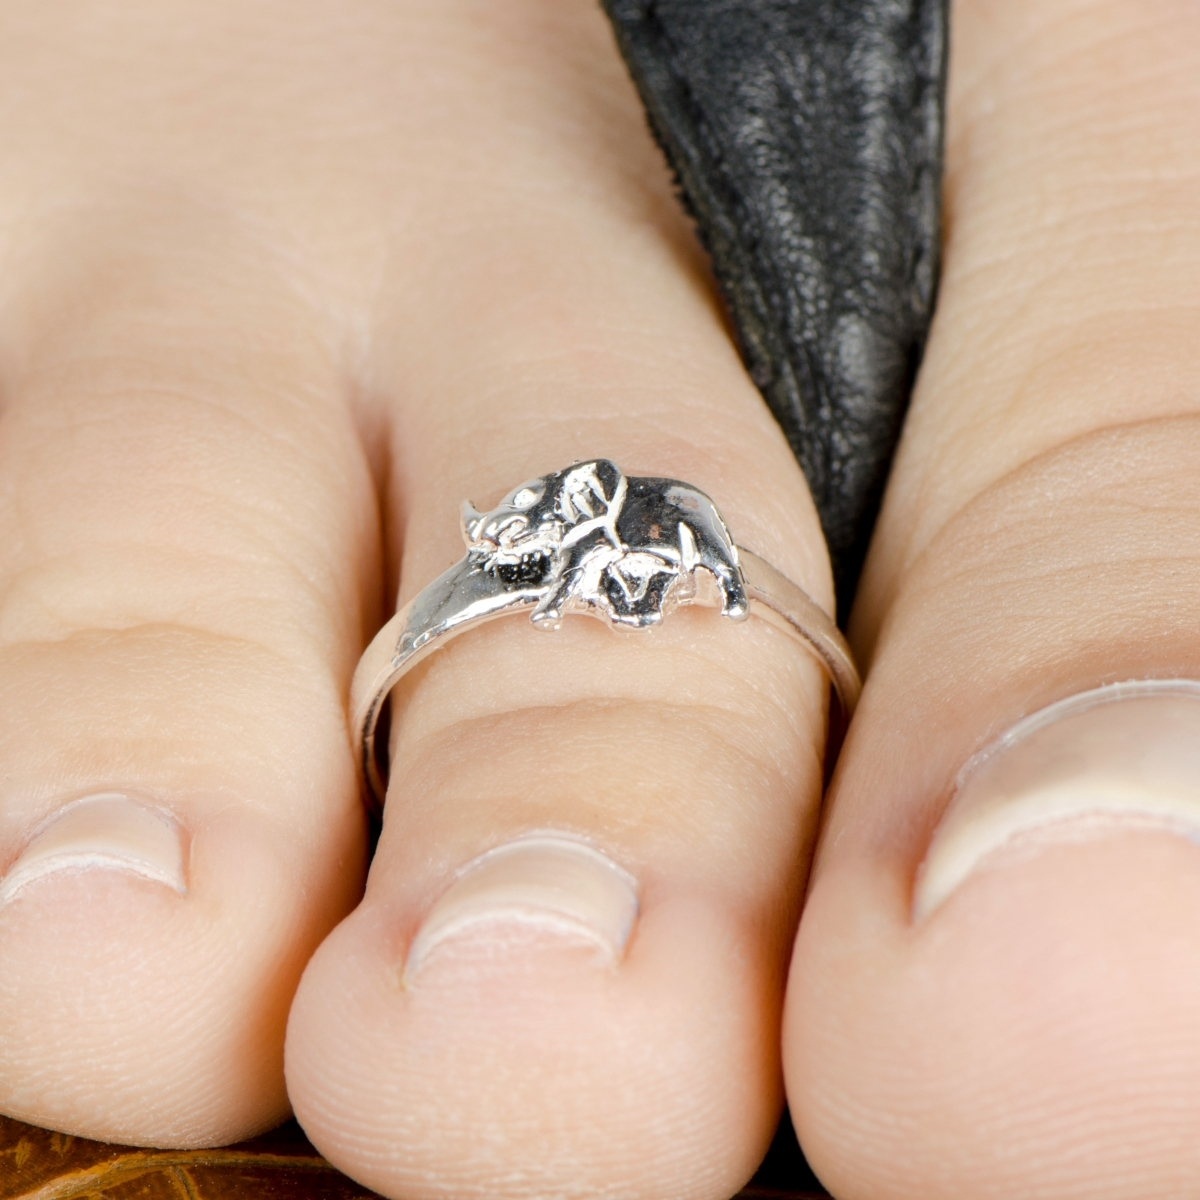 Tr – Elephant – Grateful Days Pertaining To Best And Newest Toe Engagement Rings (View 13 of 15)